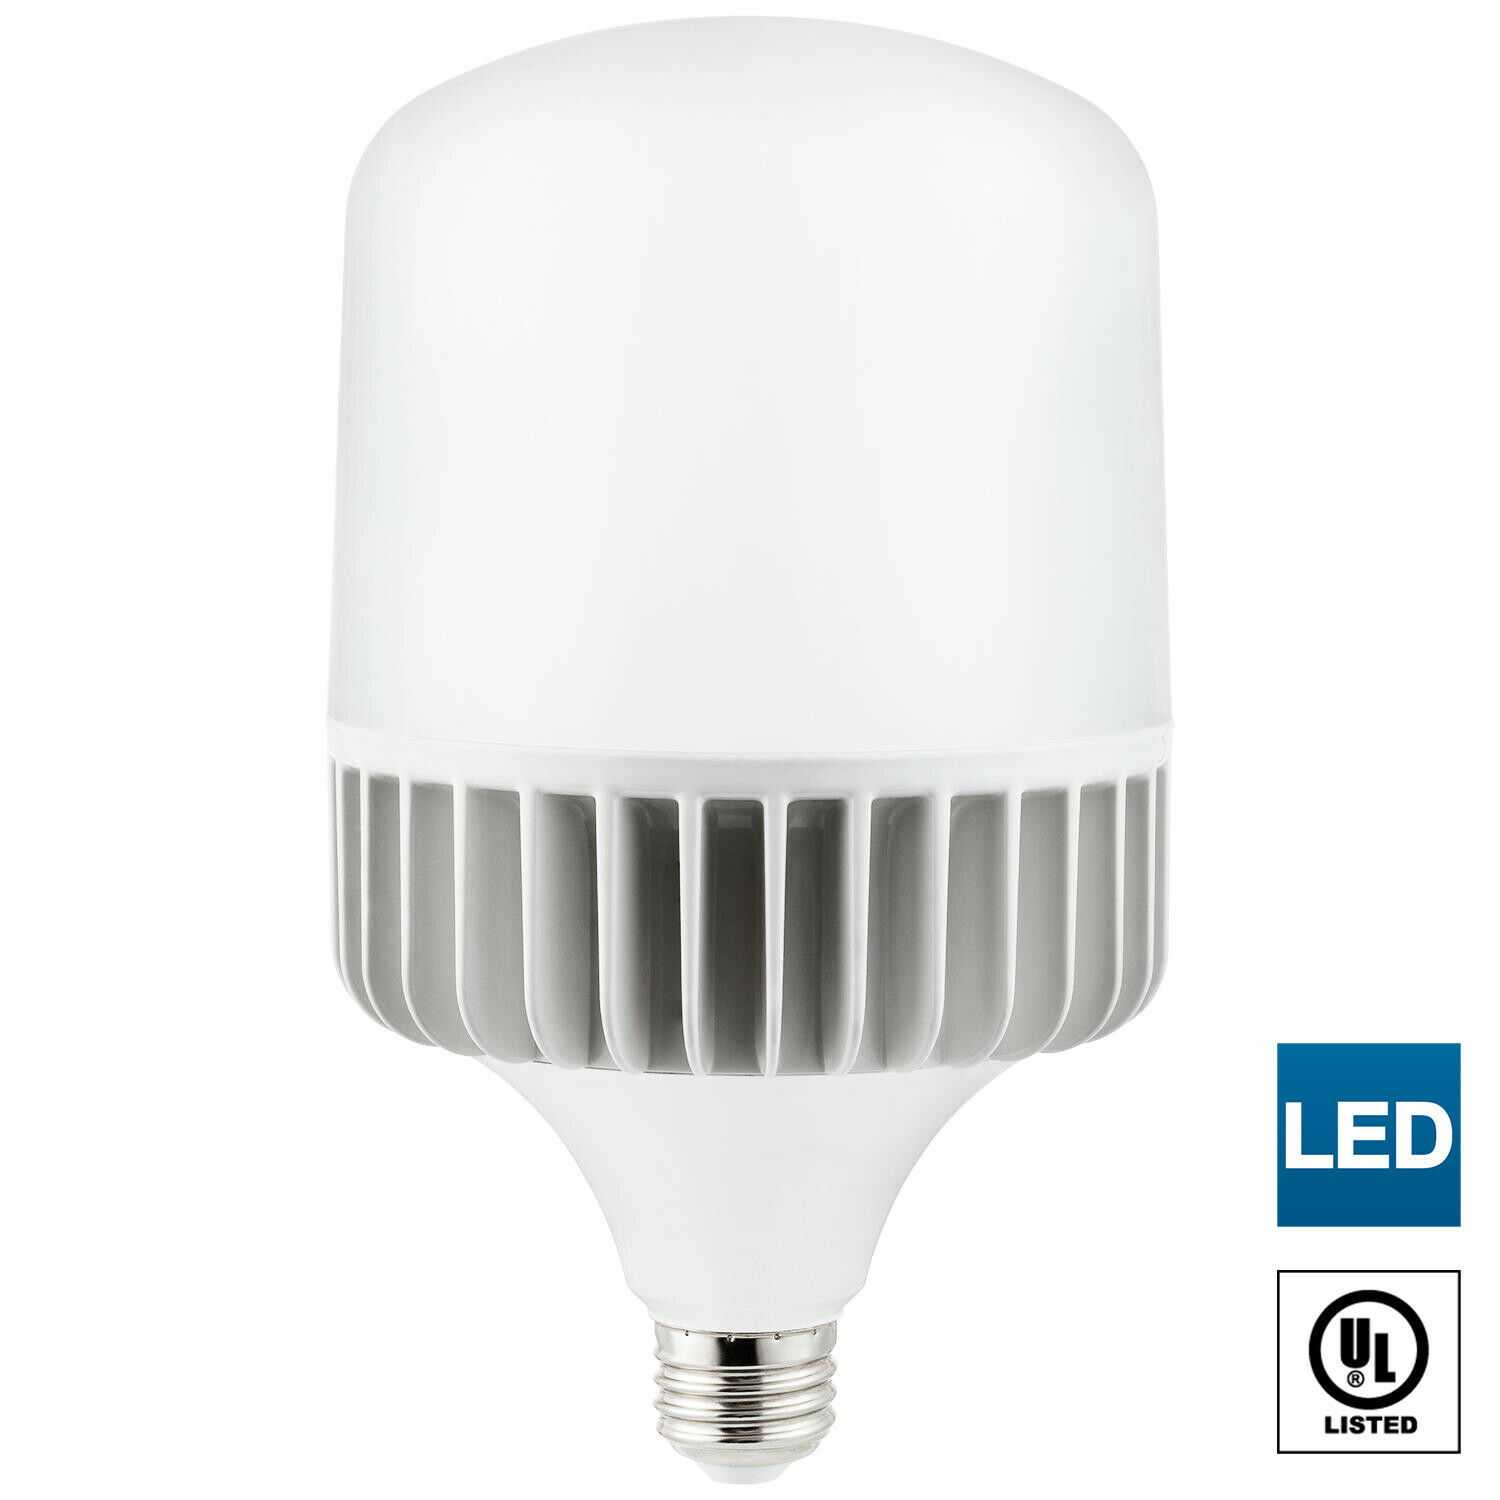 Sunlite LED T42 Bullet Bulb, E26 Medium Base, 70 Watt,  50K - Super White